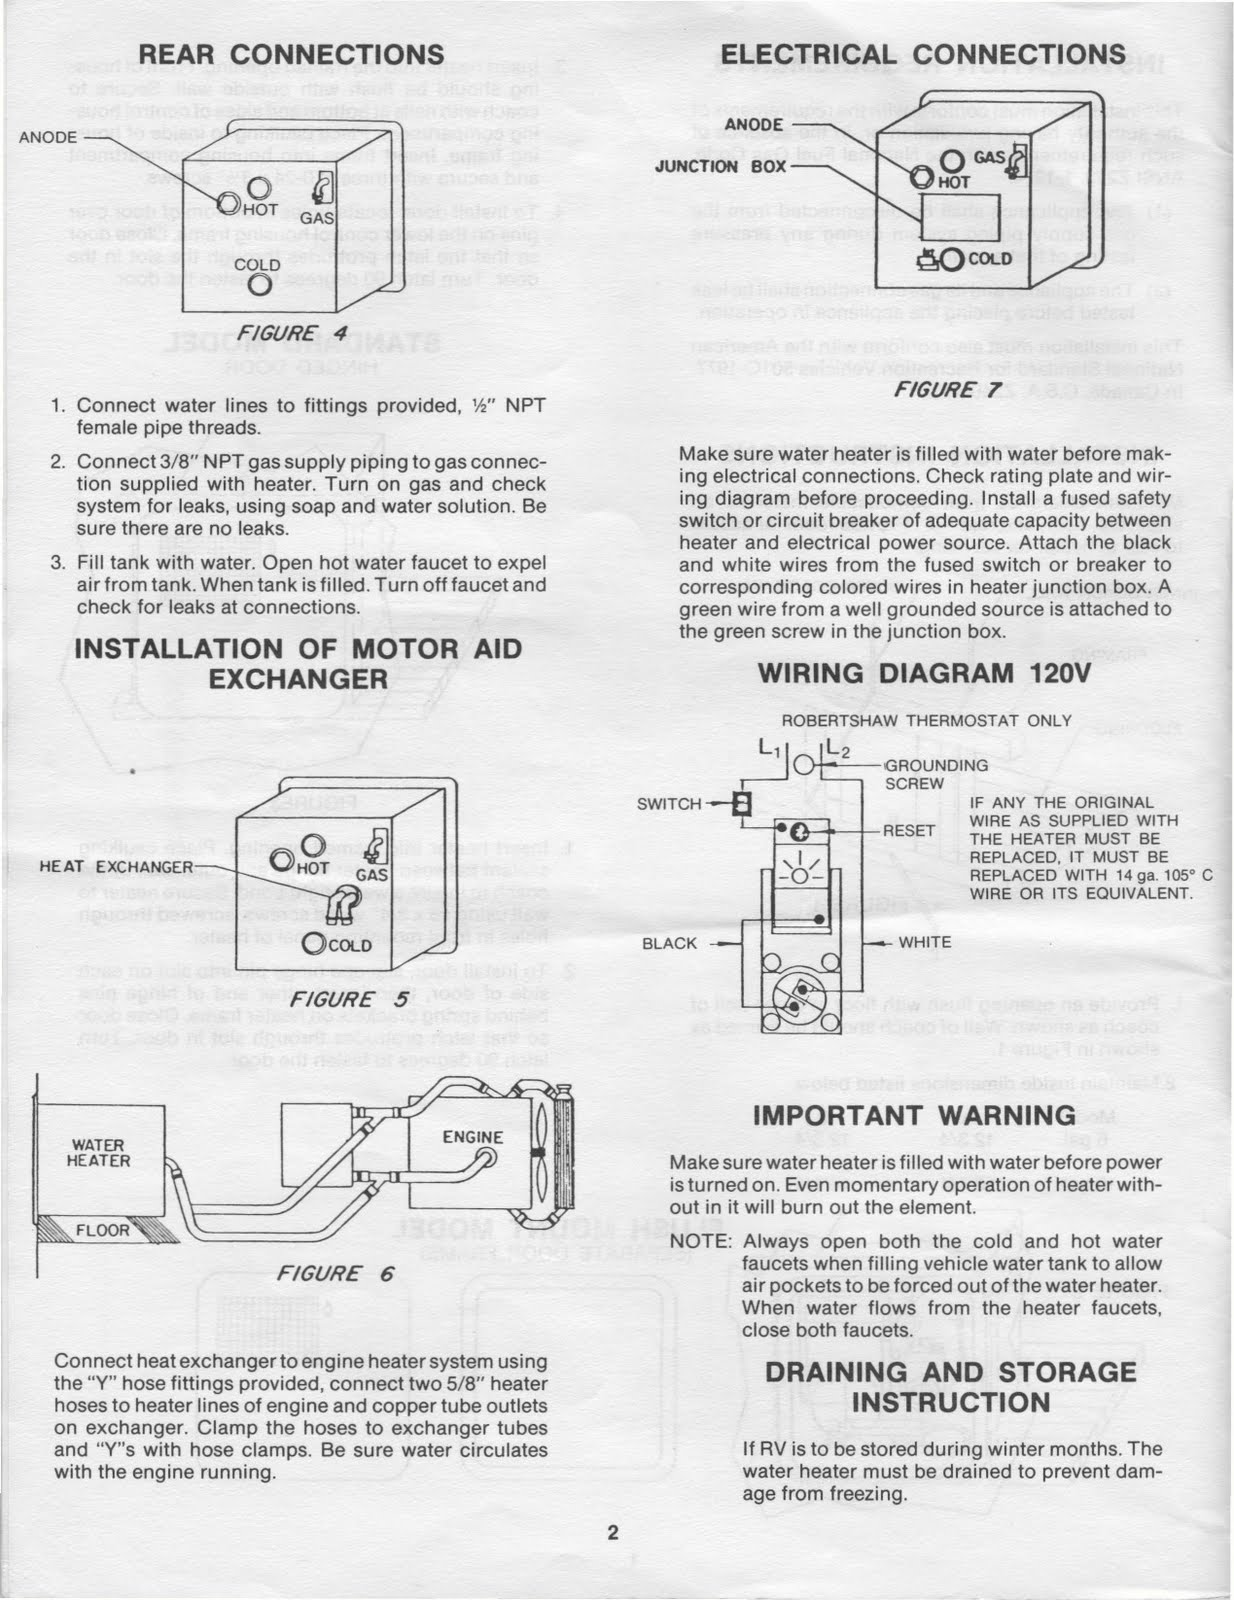 small resolution of 1848 wiring diagram for 79 dodge motorhome 1976 dodge motorhome rh diagram stockimages us